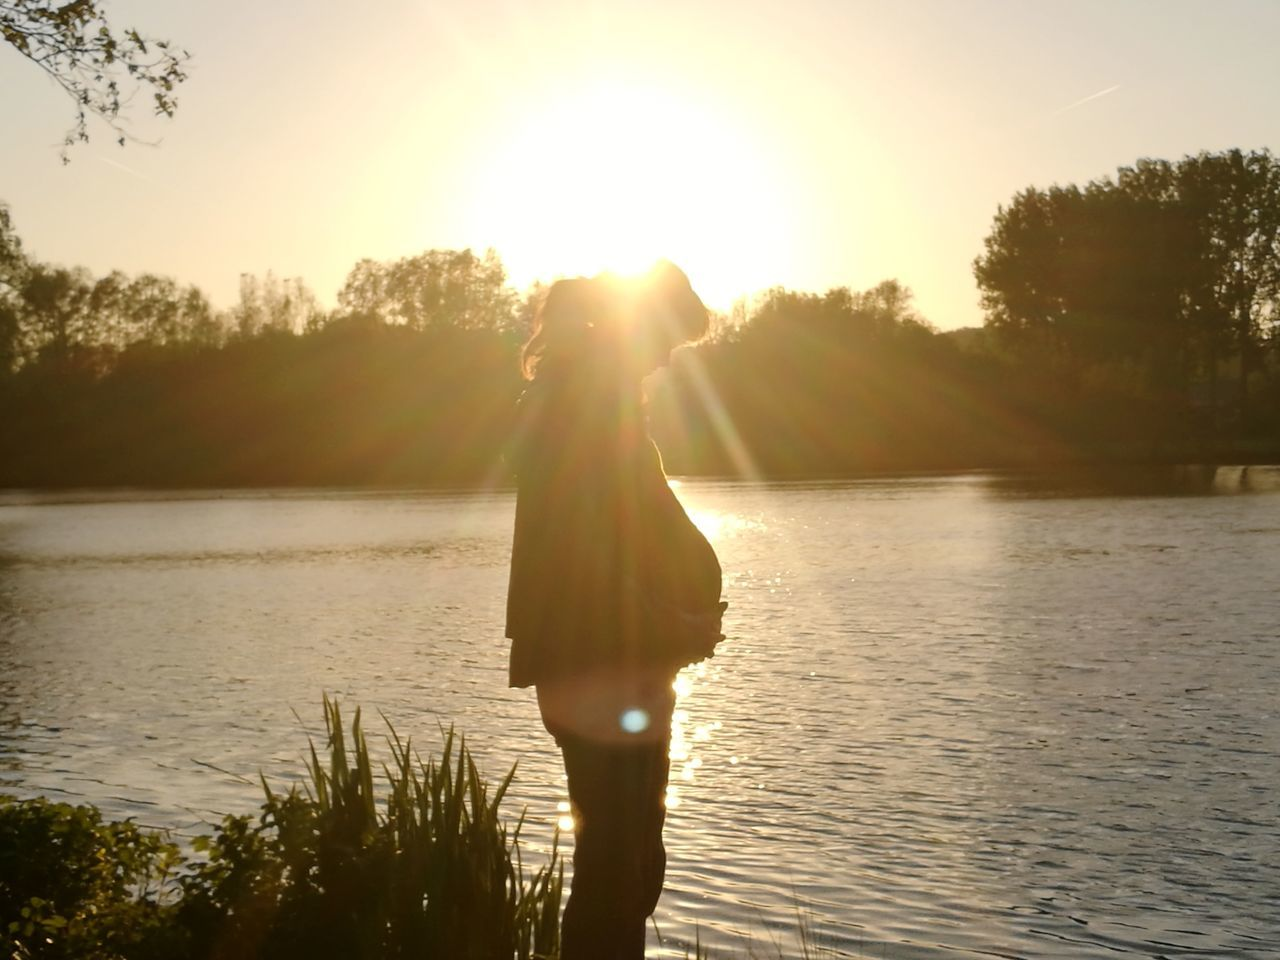 Lake Sunset Water One Person Sunlight Tree Outdoors Nature People Summer Silhouette Spirituality Only Women One Woman Only Adult Sky Adults Only Human Body Part Beauty In Nature Vacations Pregnant 40weeks 1daytogo P9leica The Portraitist - 2017 EyeEm Awards